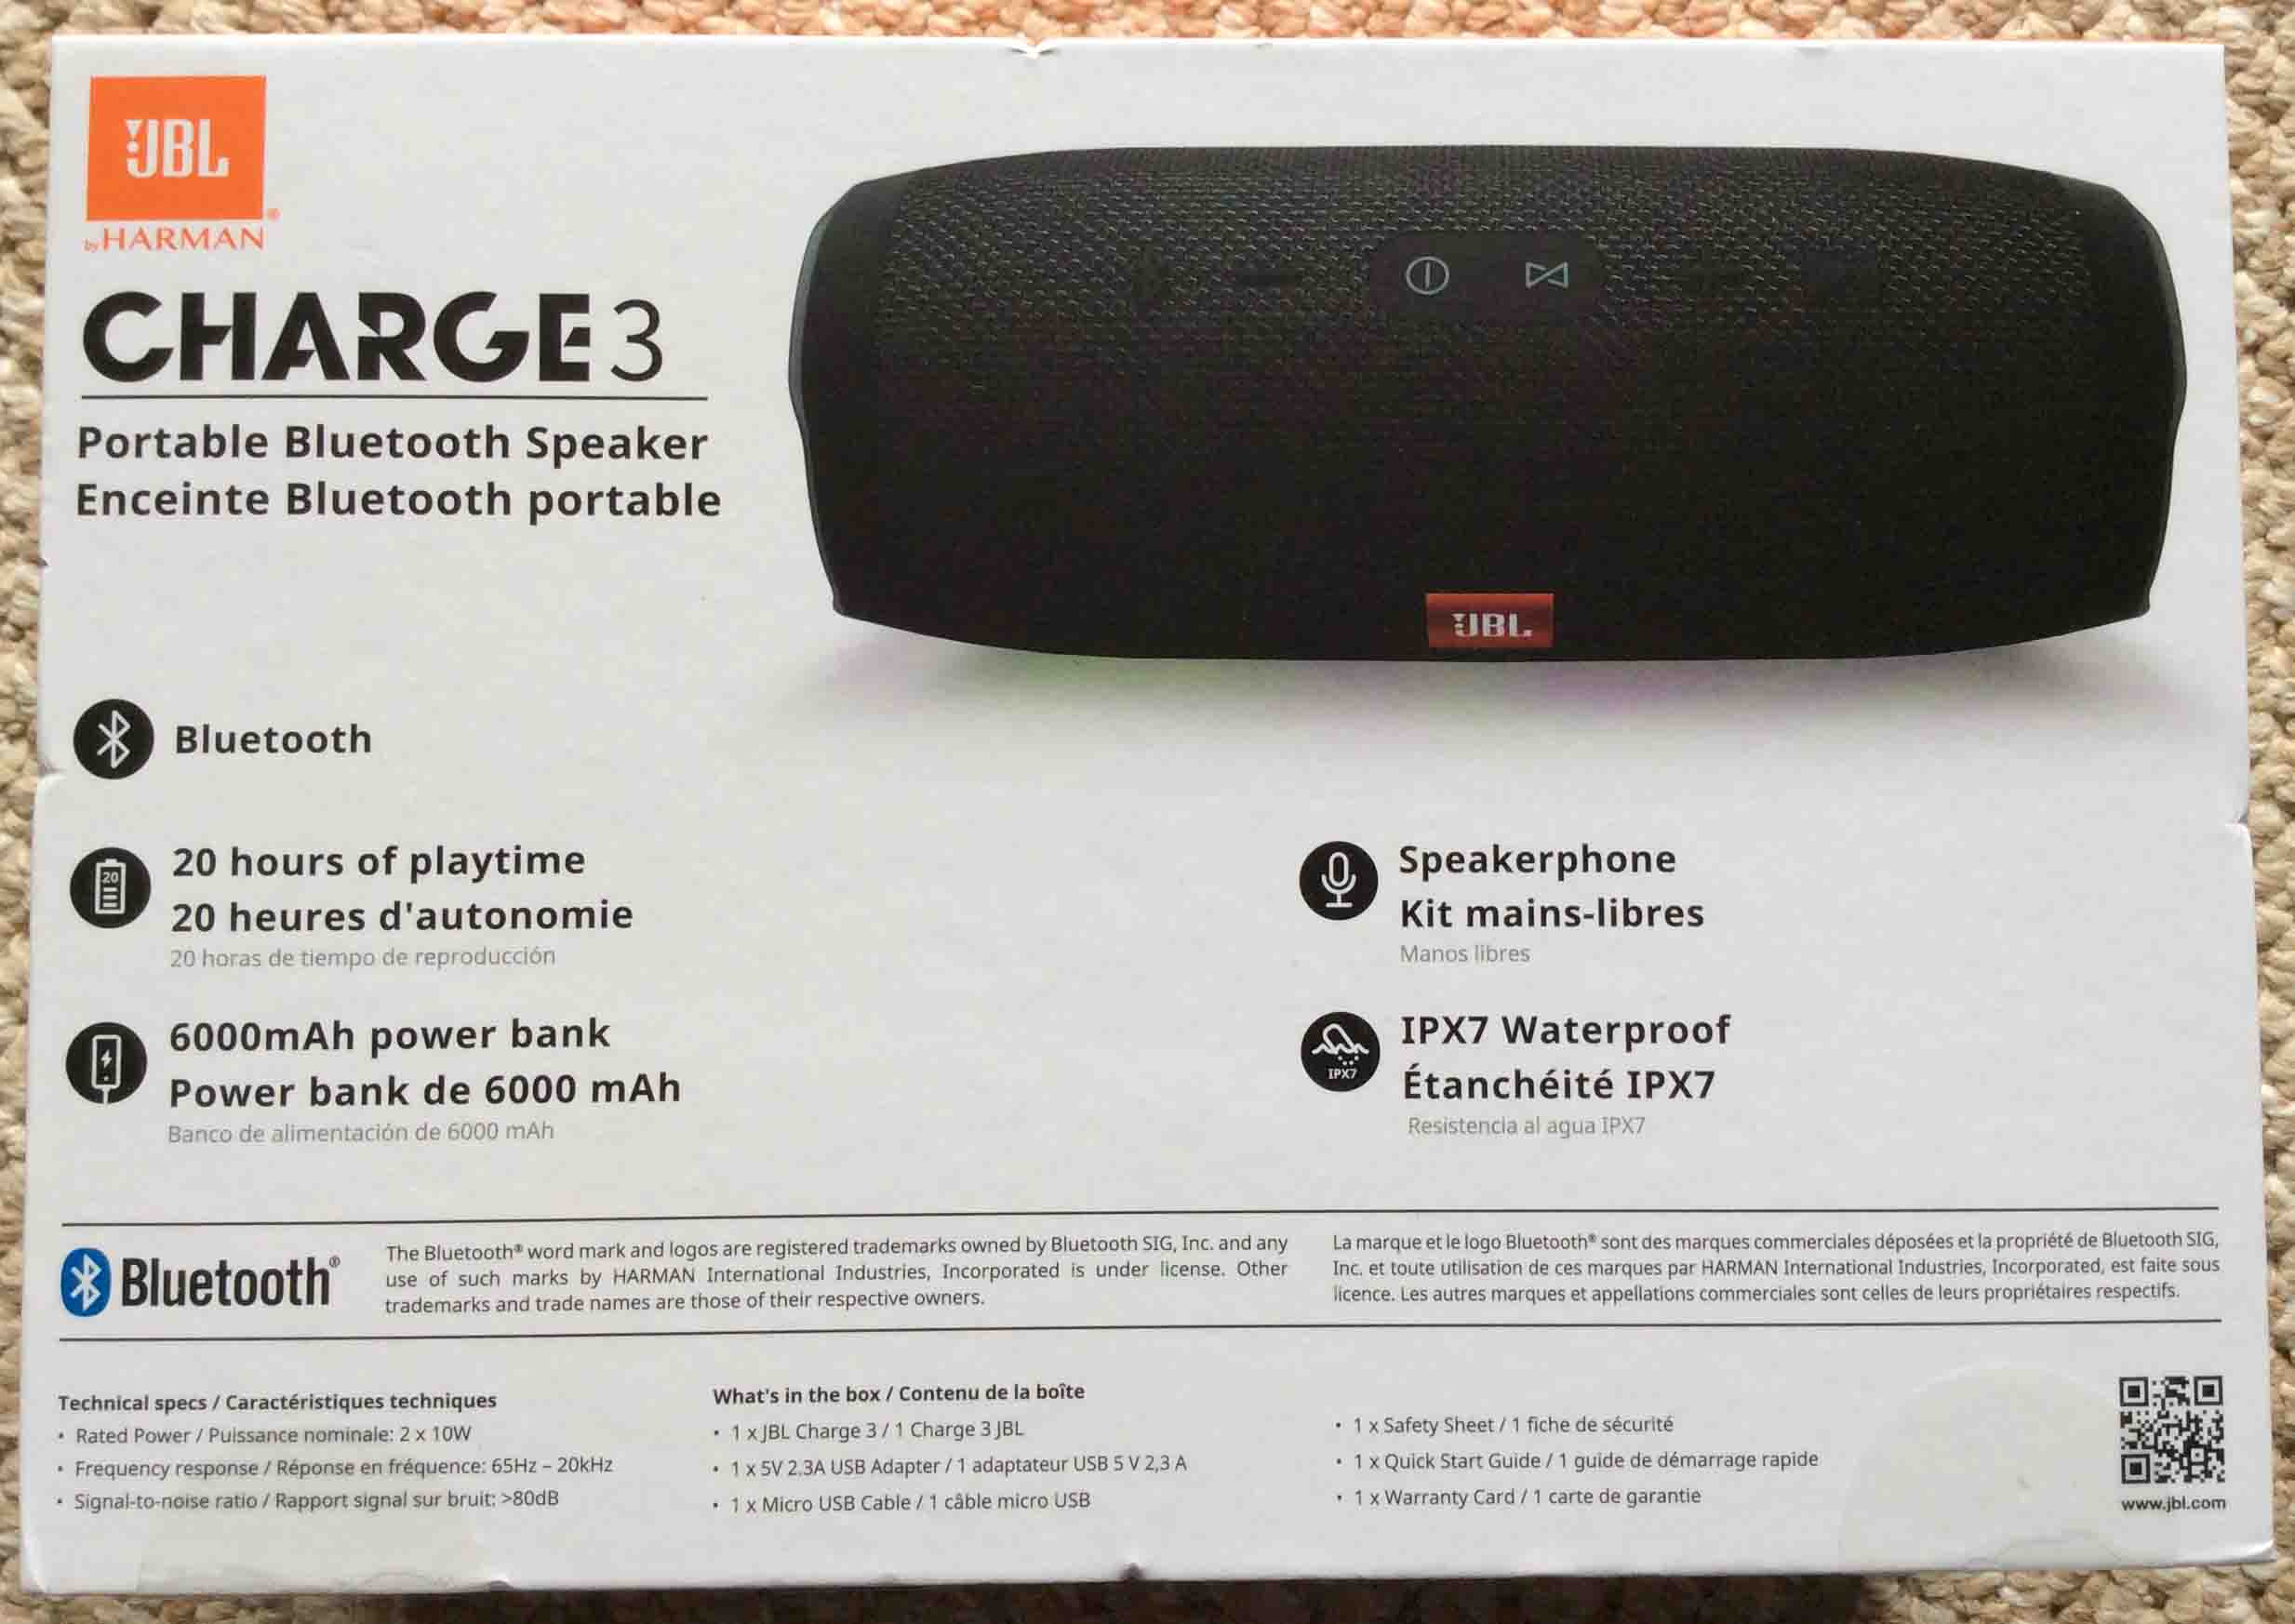 Jbl Charge 3 Waterproof Wireless Bluetooth Speaker Picture Gallery Mini Portable Charger 1